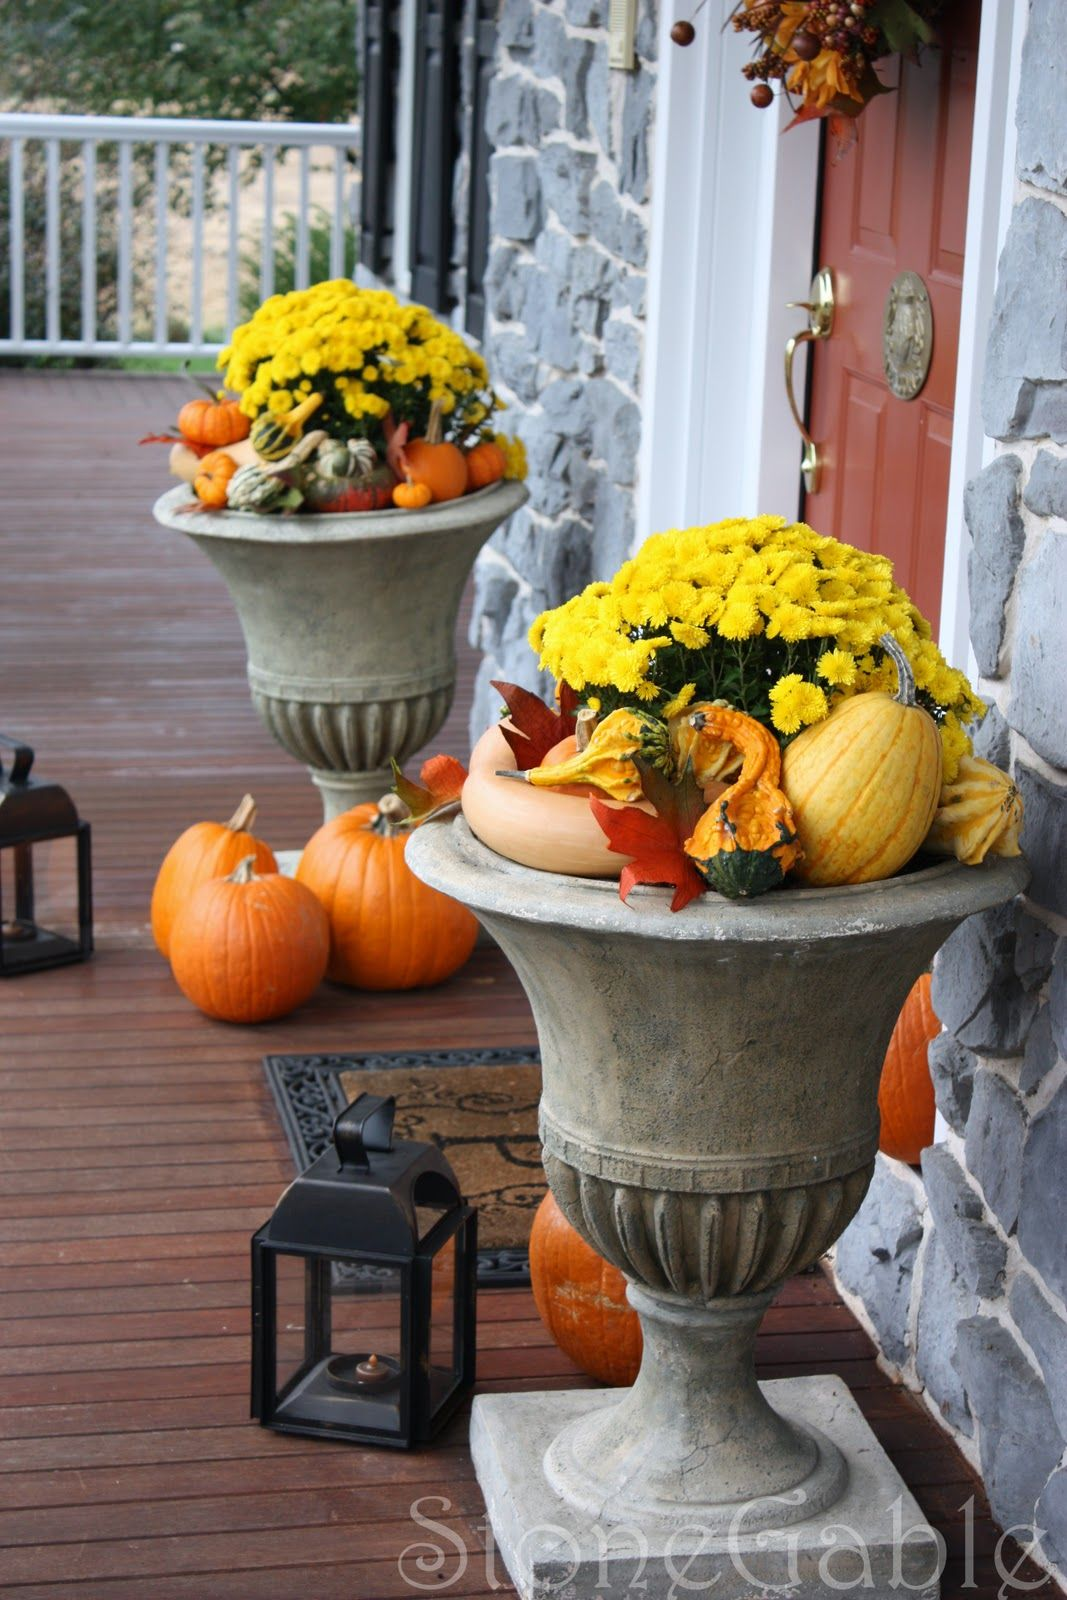 Outdoor fall decorating ideas yard - Outdoor Fall Decor